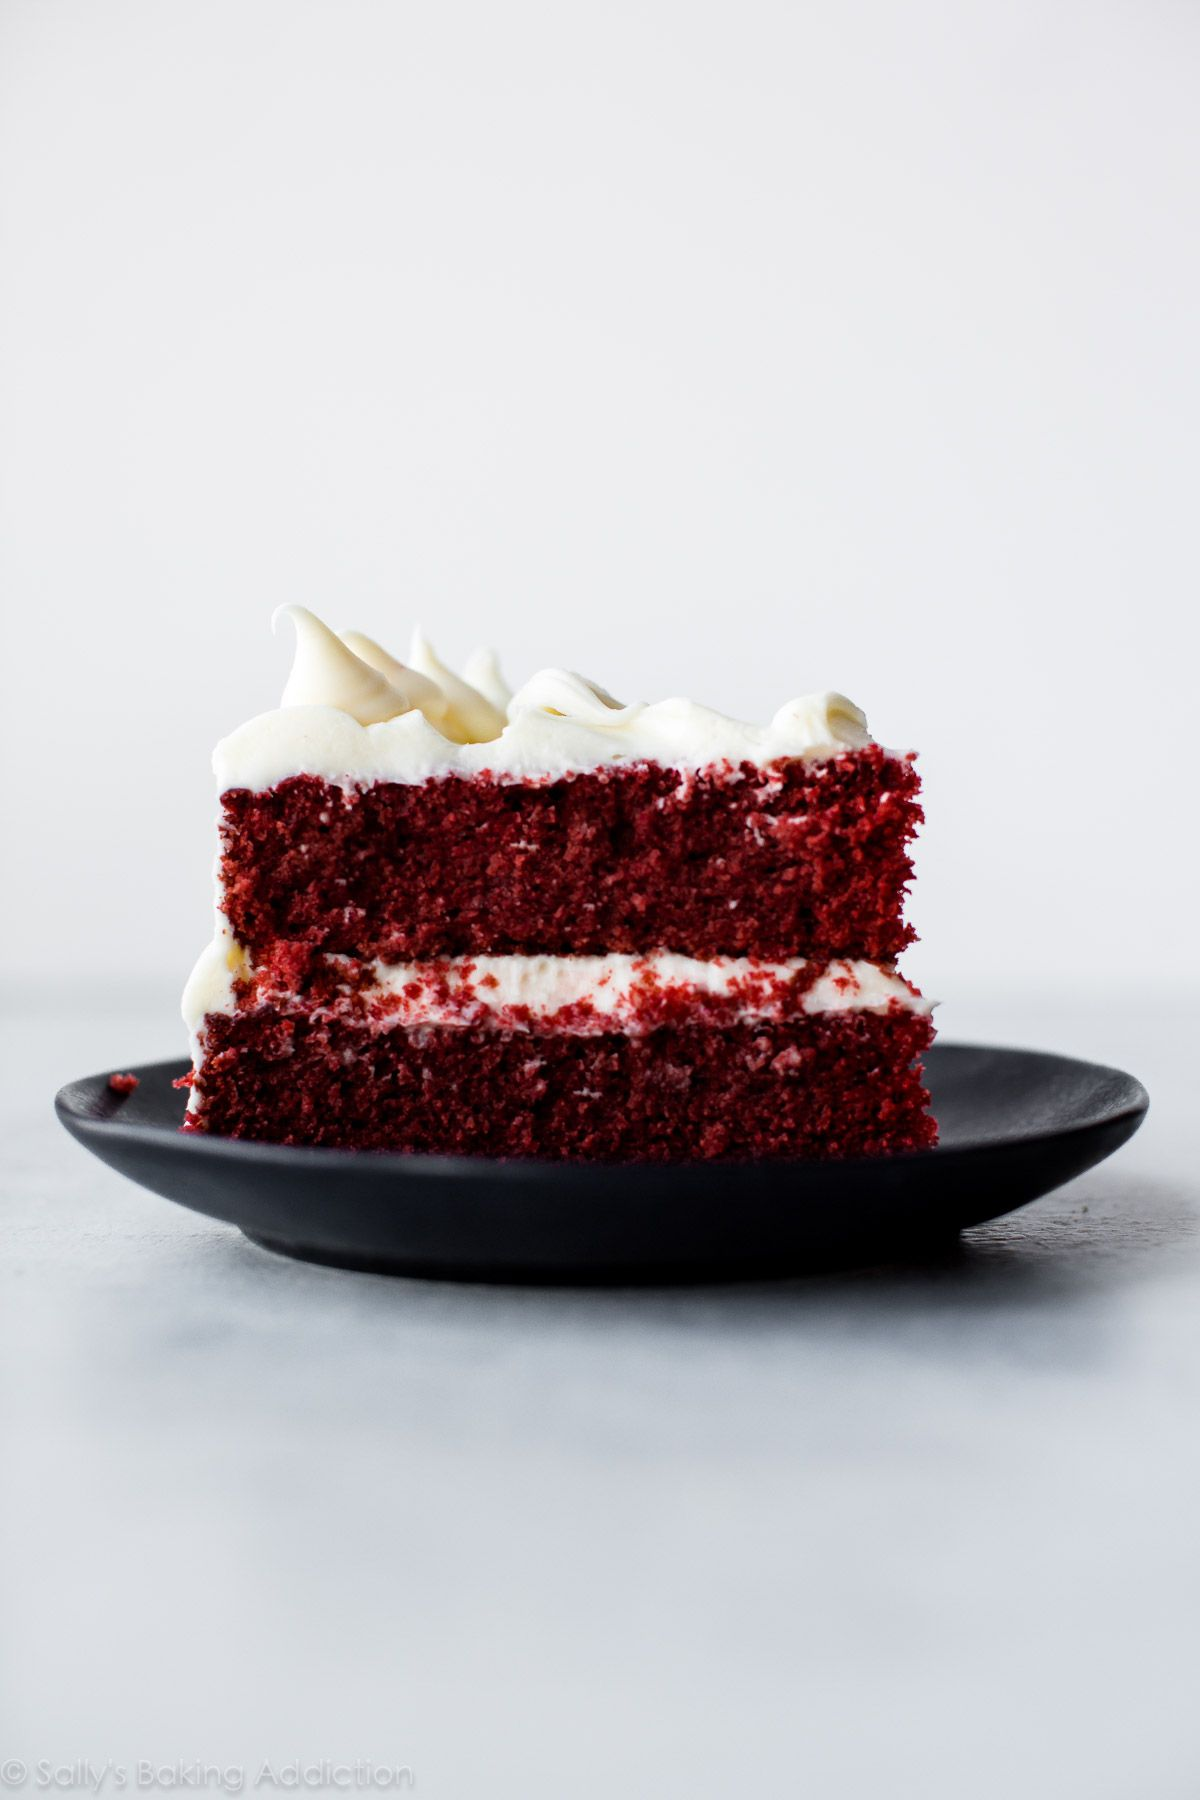 Red Velvet Cake With Cream Cheese Frosting Velvet Cake Recipes Layer Cake Recipes Red Velvet Cake Recipe